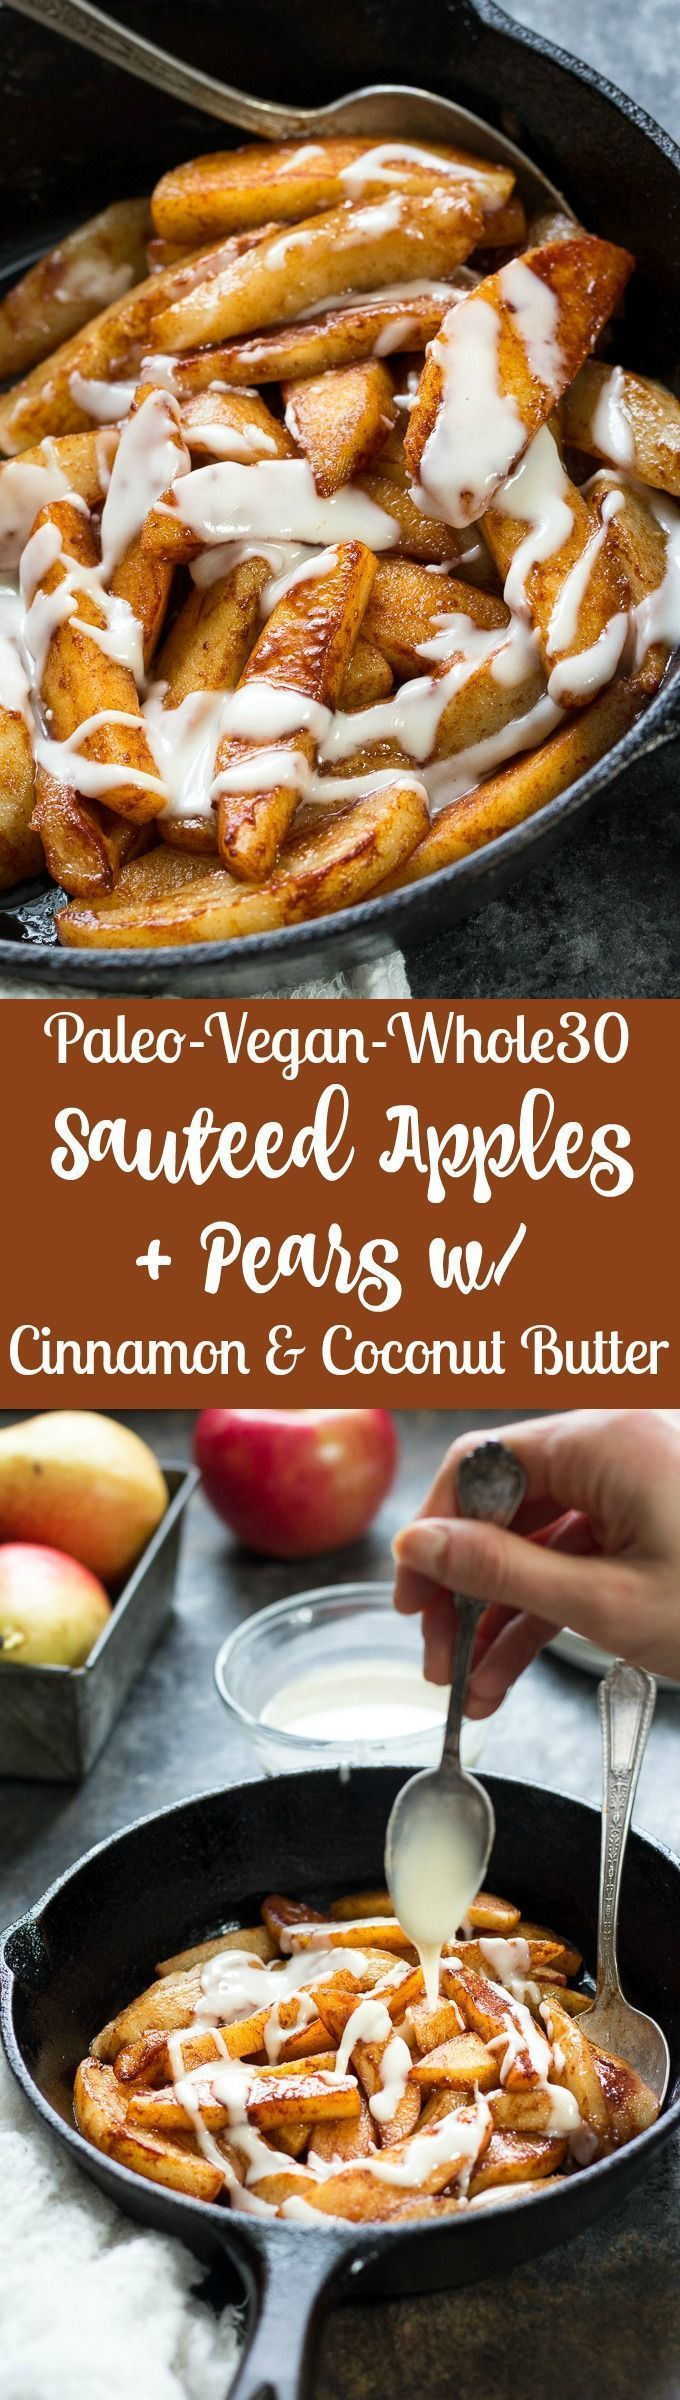 Incredibly easy and delicious Sauted Apples & Pears with Cinnamon and Coconut Butter that's Paleo, Vegan, and Whole30 compliant. No added sugar or sweeteners, dairy free, gluten free.